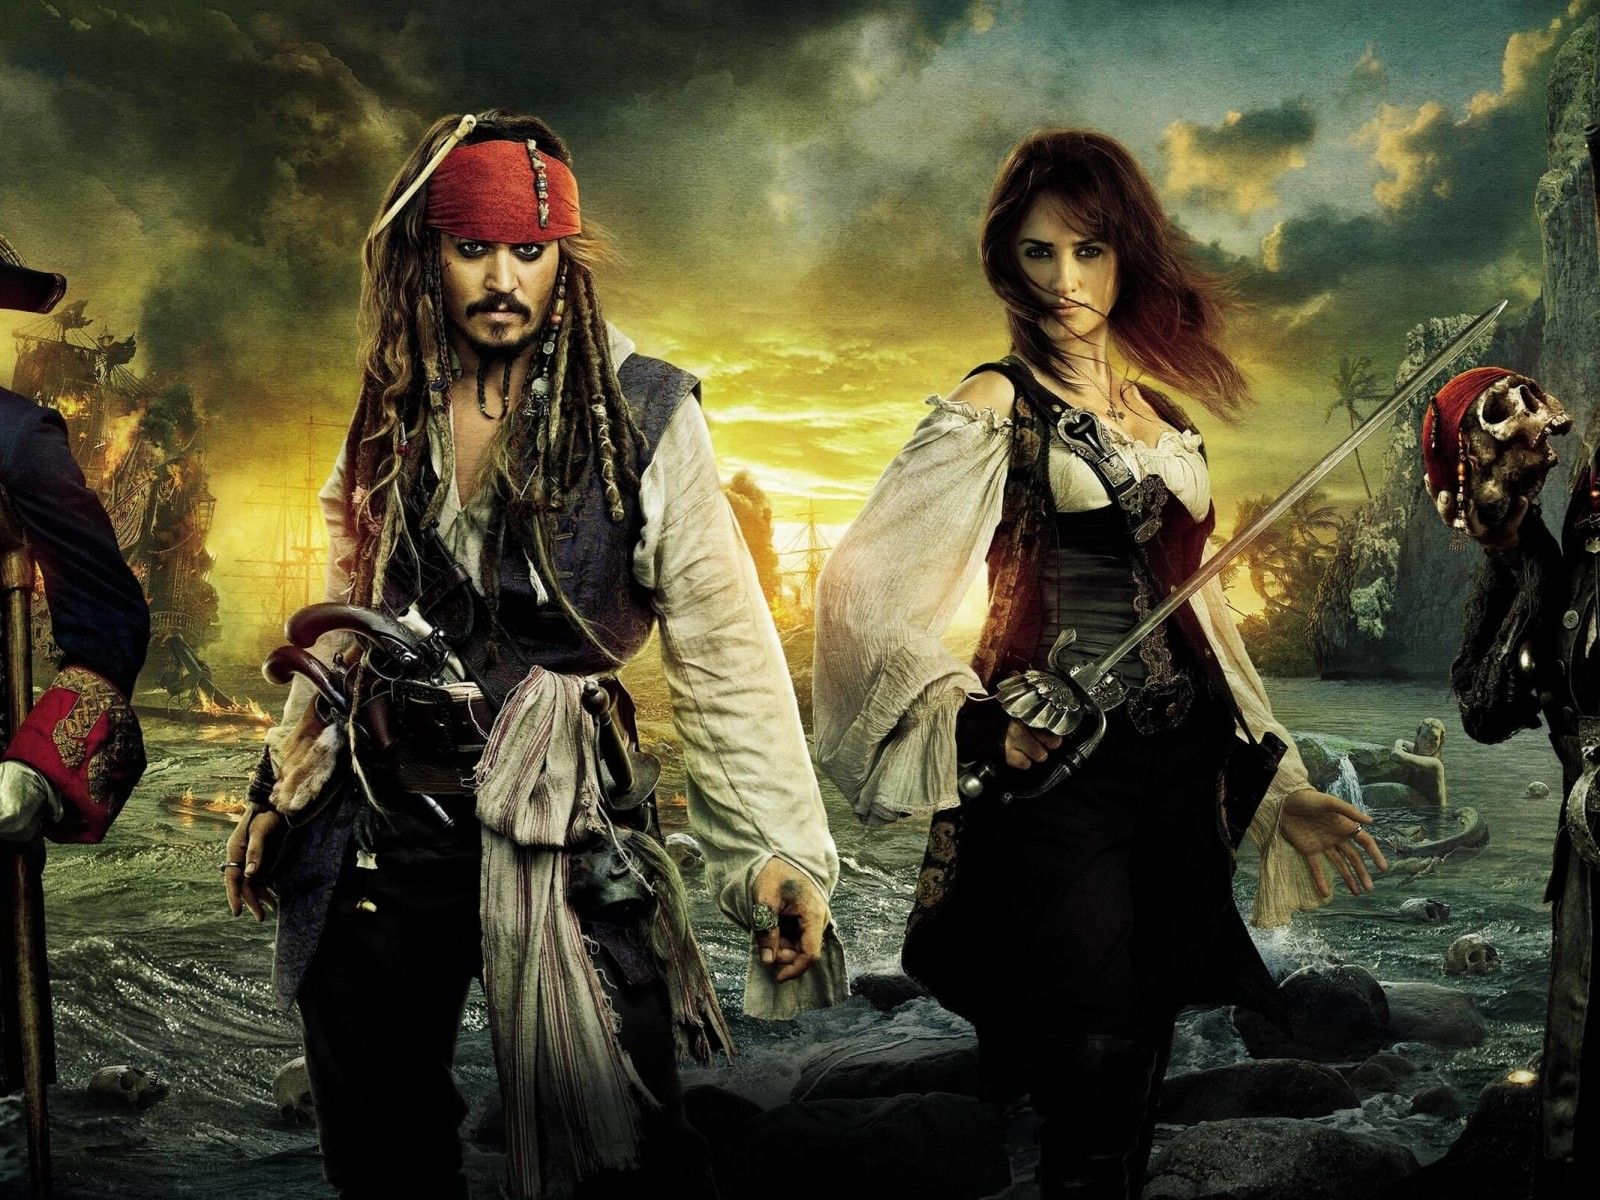 Pirates of the Caribbean: On Stranger Tides Characters Wallpaper for Desktop 1600x1200